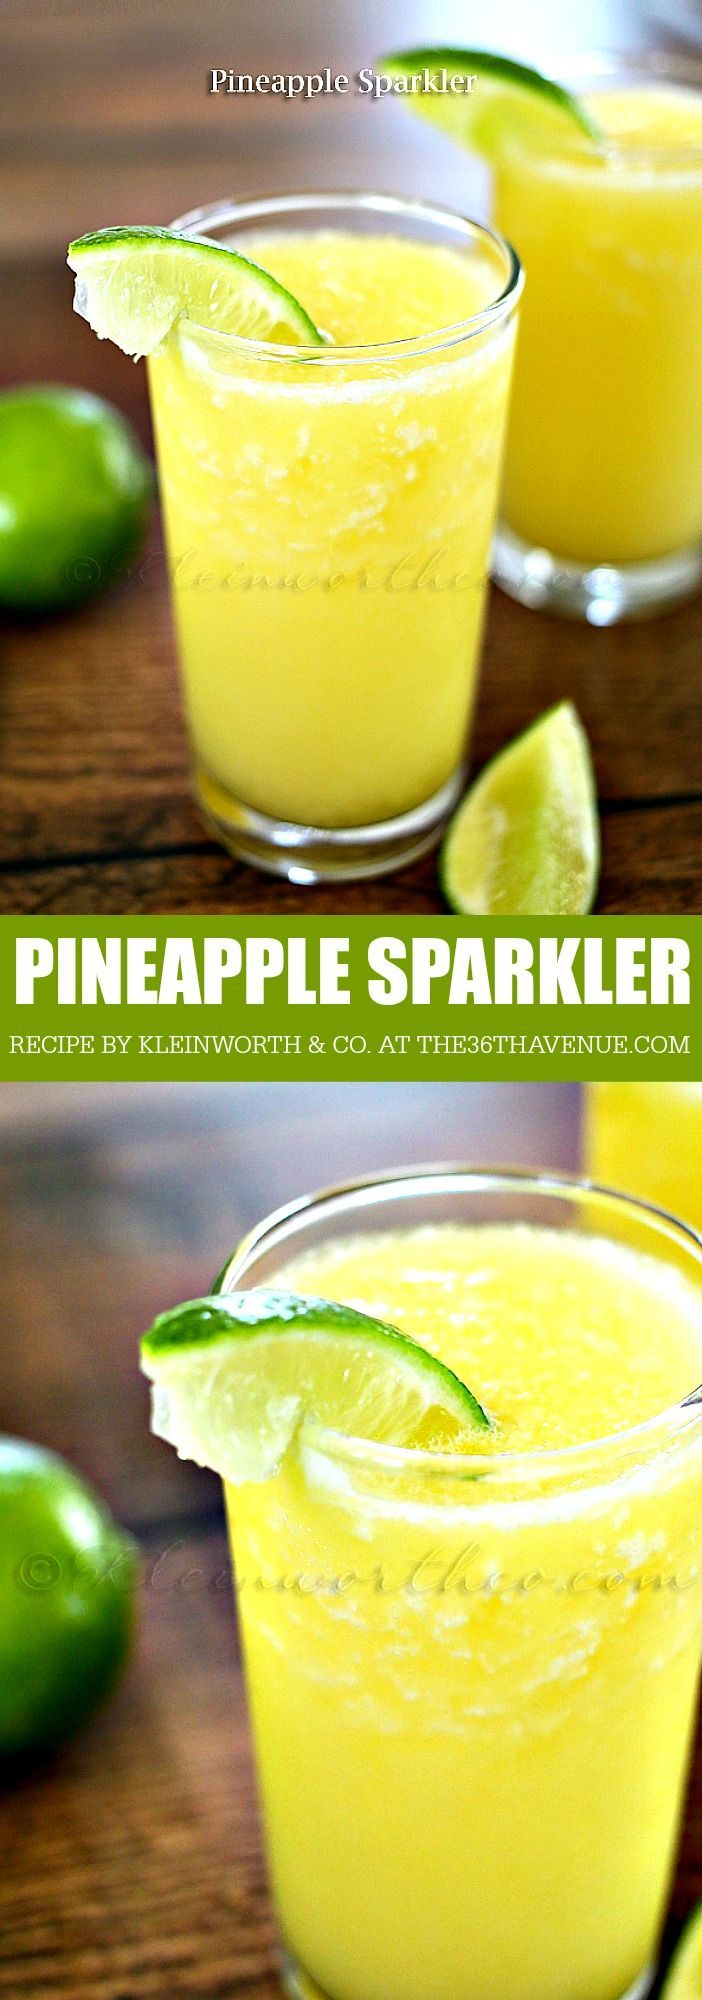 Pineapple Sparkler Recipe - This drink is delicious!